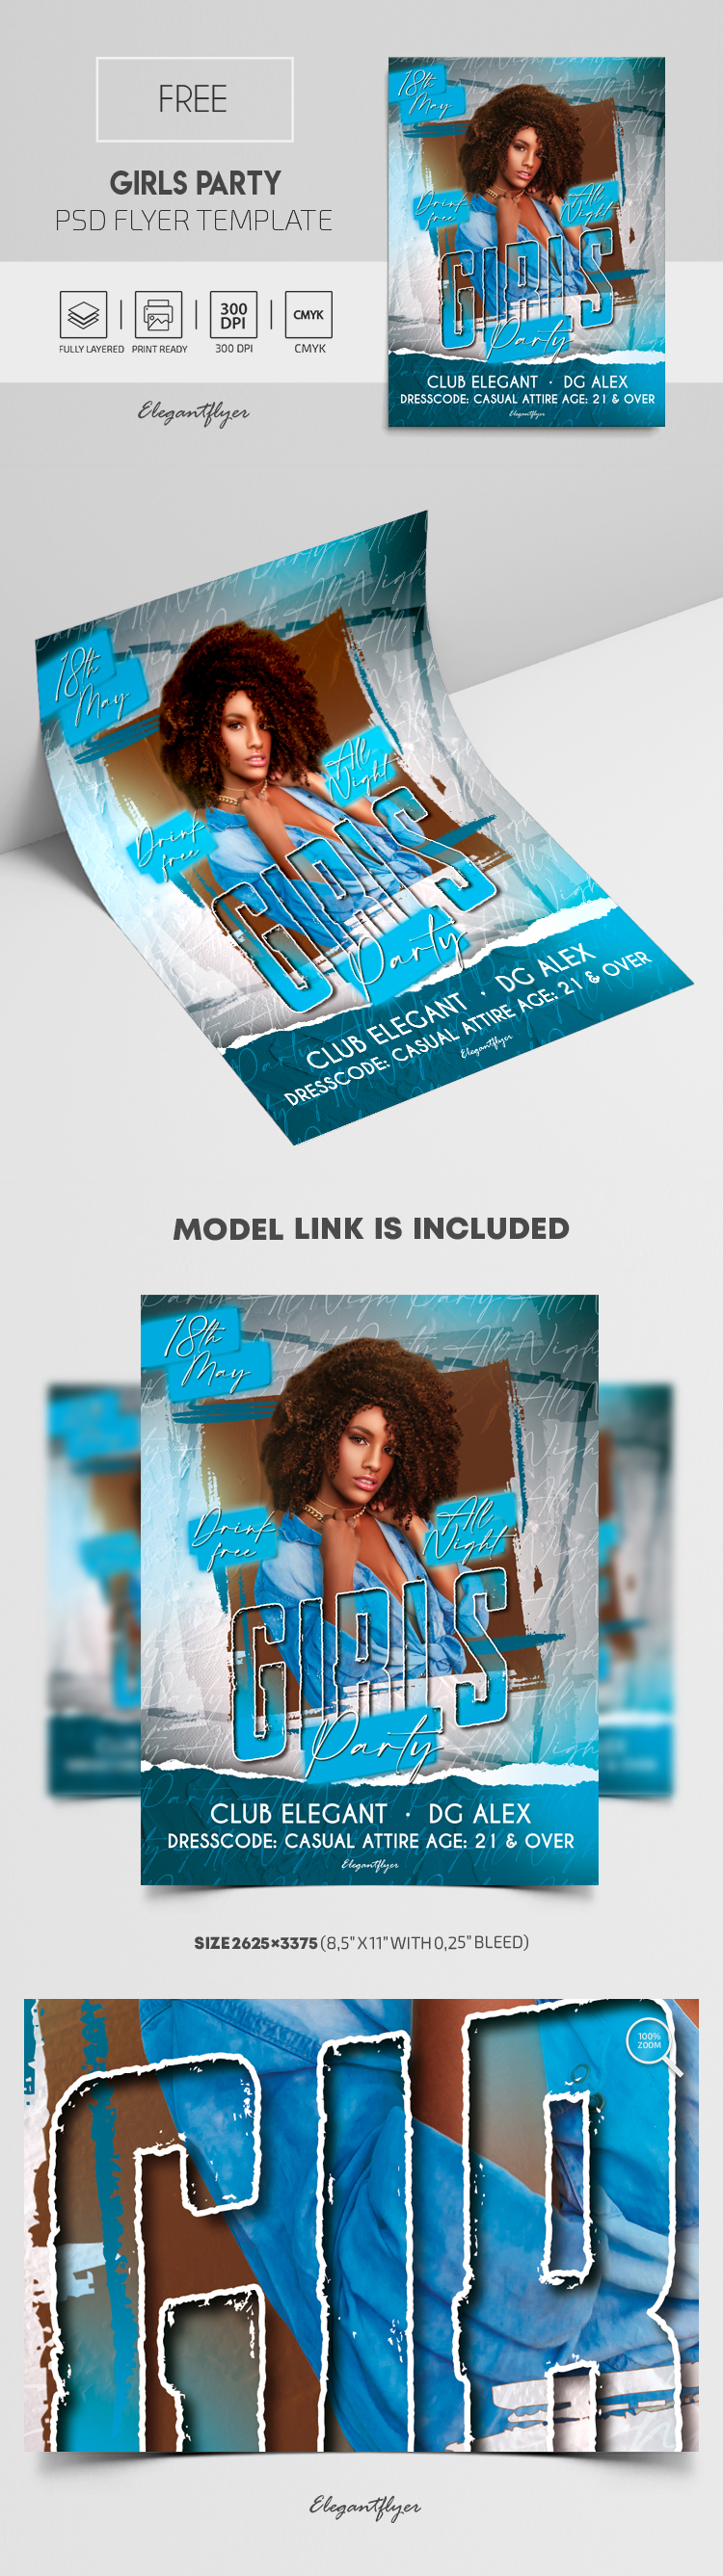 Girls Party – Free Flyer PSD Template